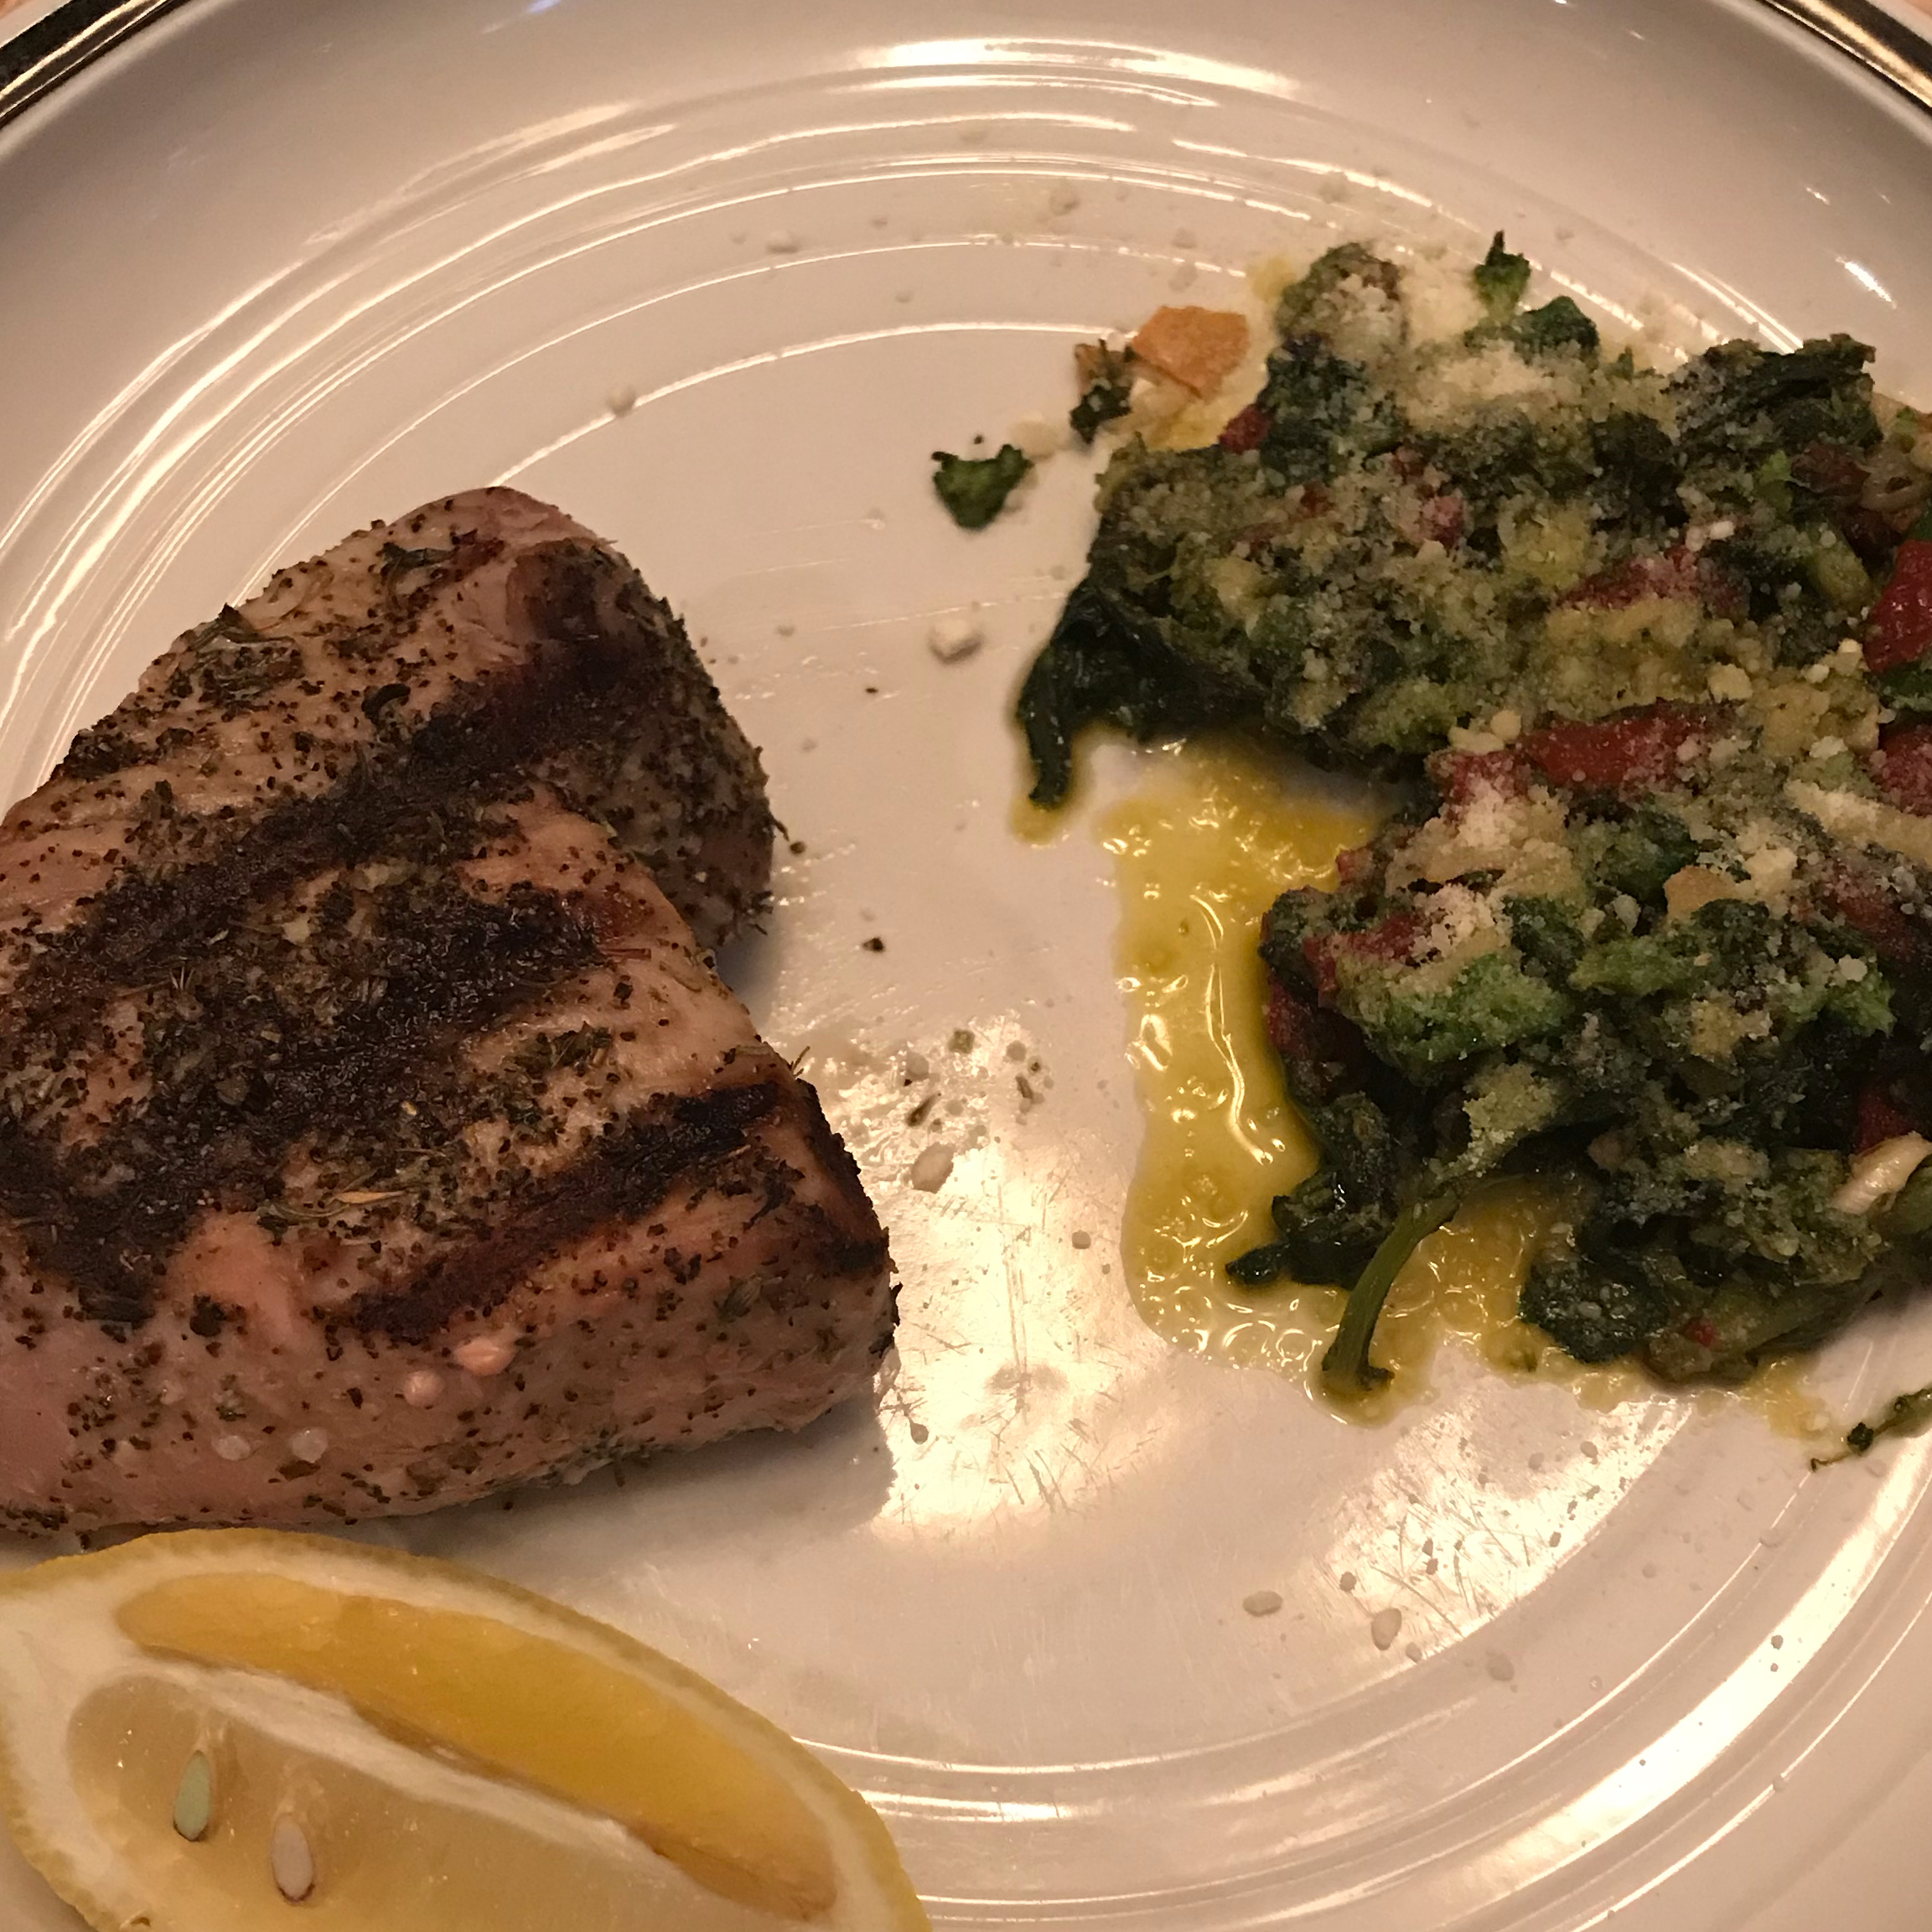 Broccoli Rabe with Roasted Peppers mccluskey64